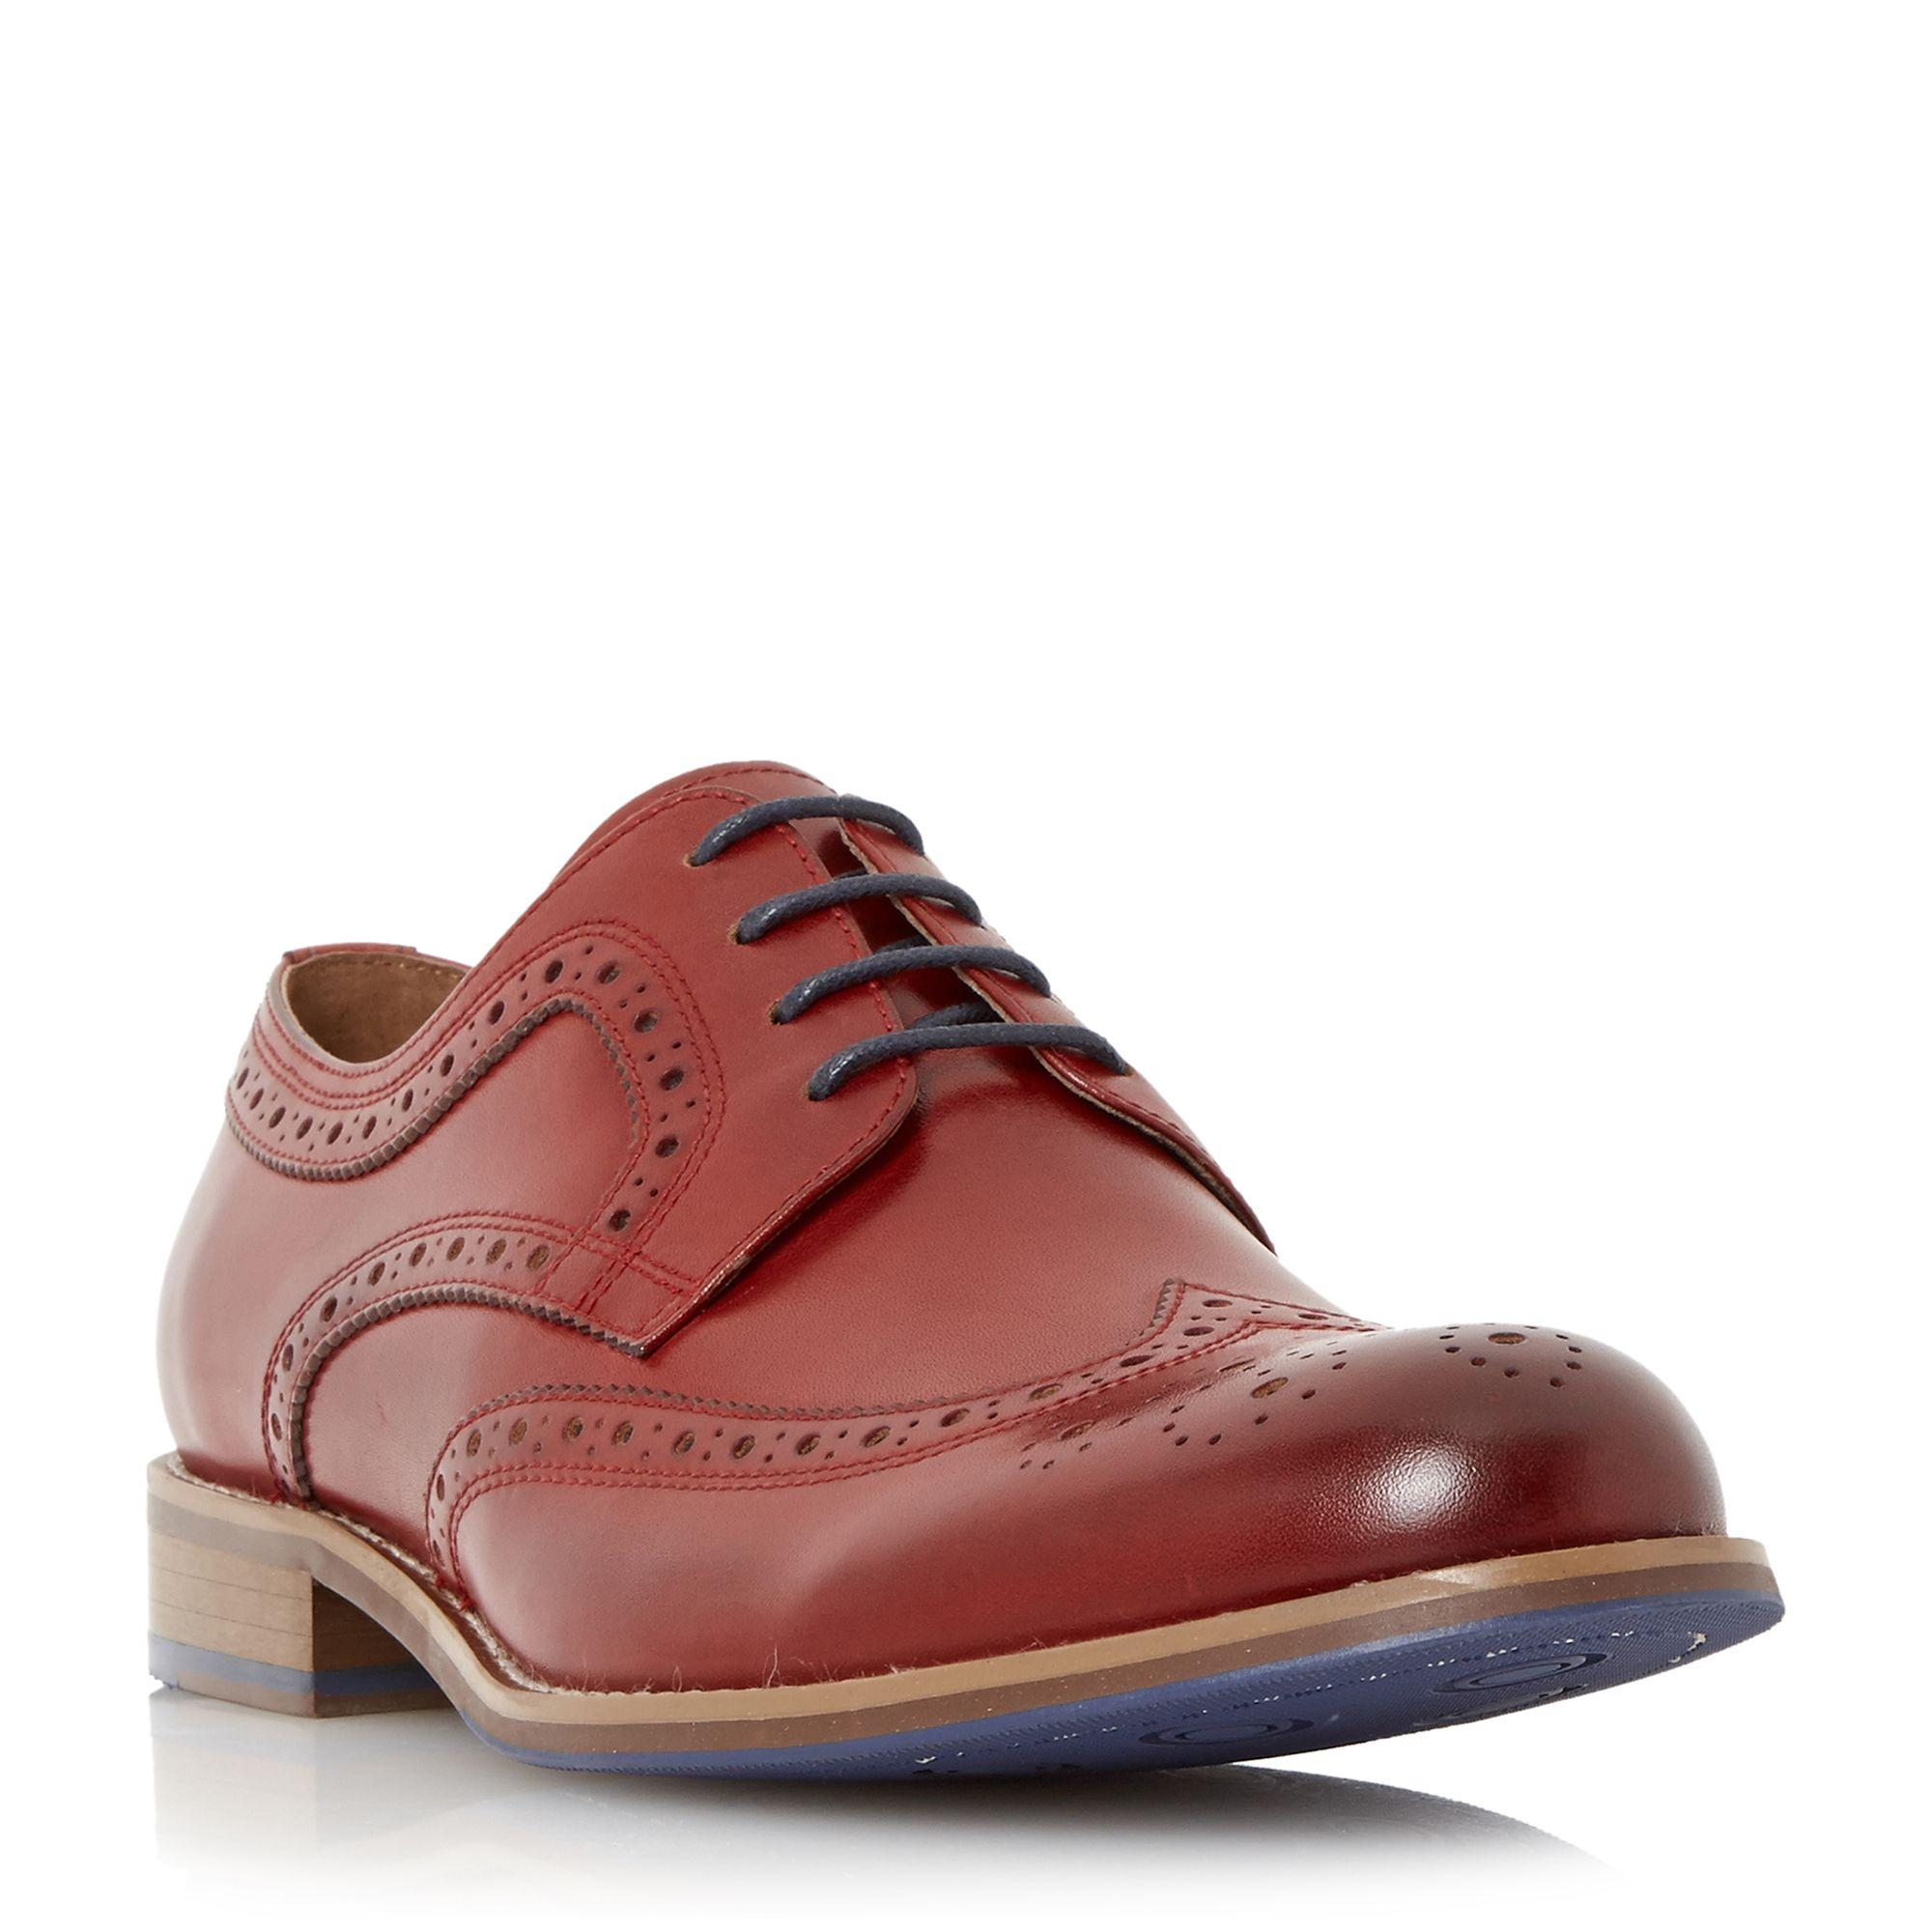 Dune Shoes Sale House Of Fraser